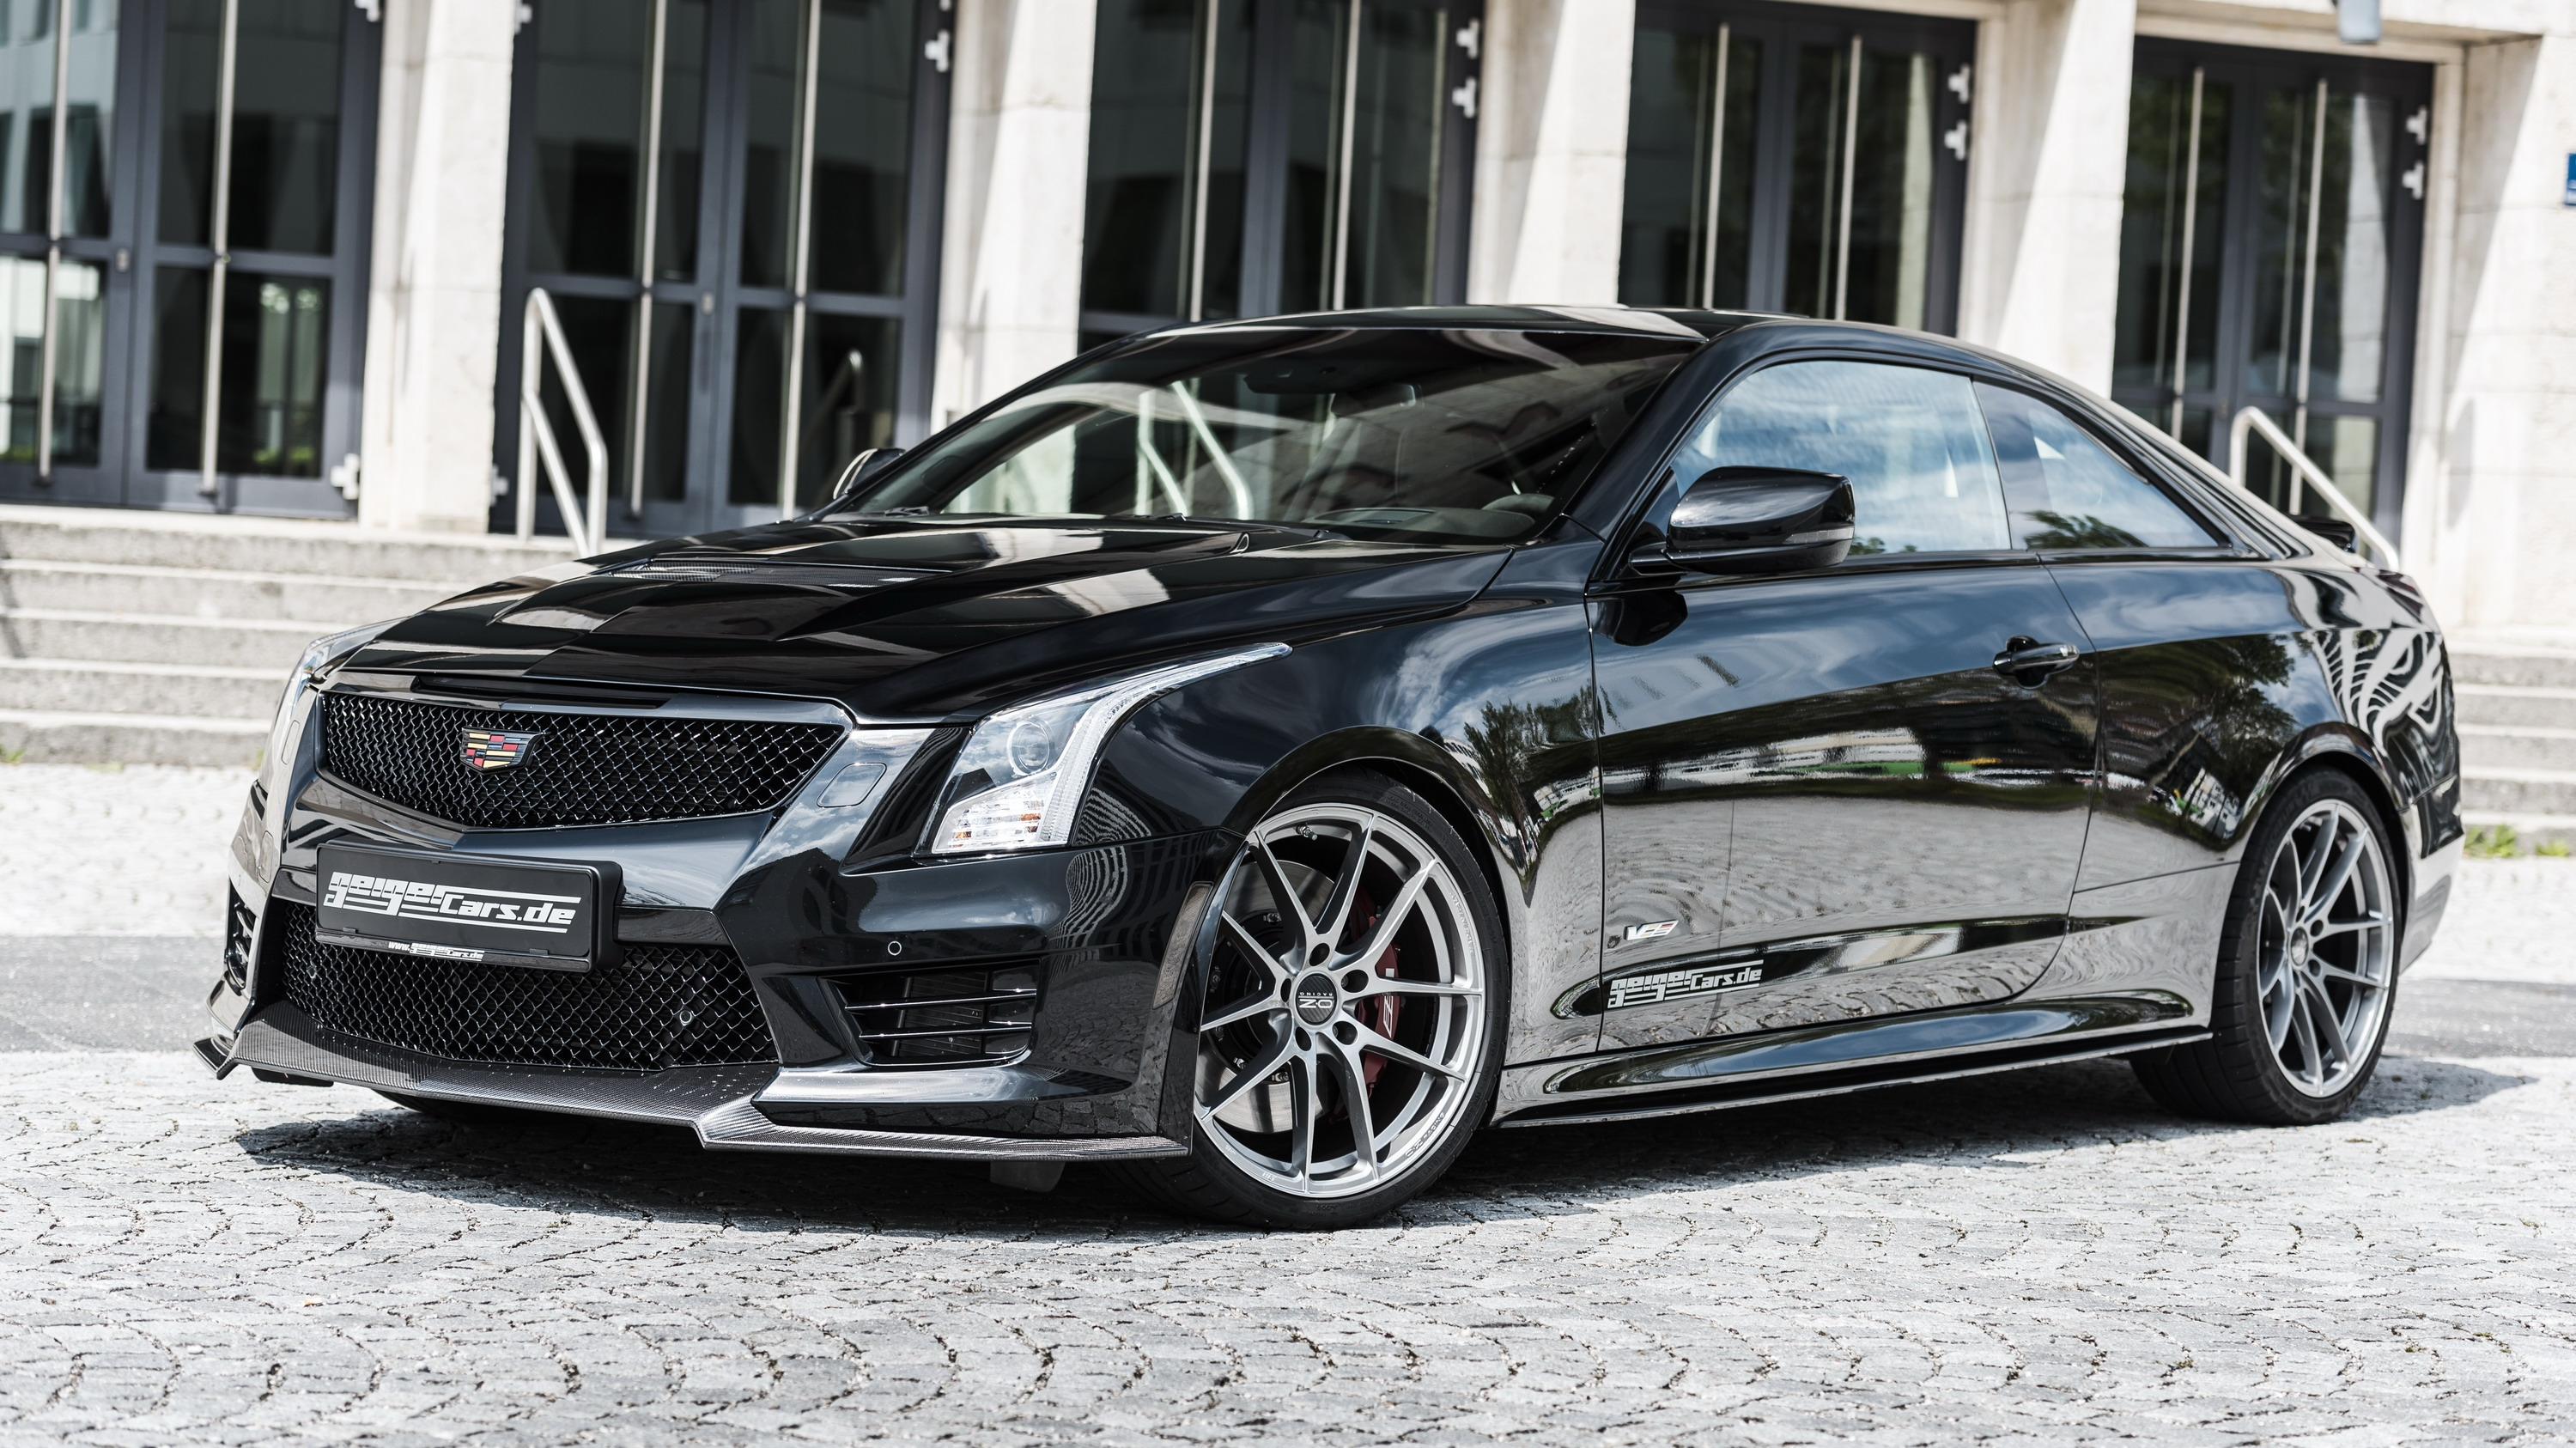 2016 cadillac ats v coupe twin turbo black line by geiger cars pictures photos wallpapers. Black Bedroom Furniture Sets. Home Design Ideas